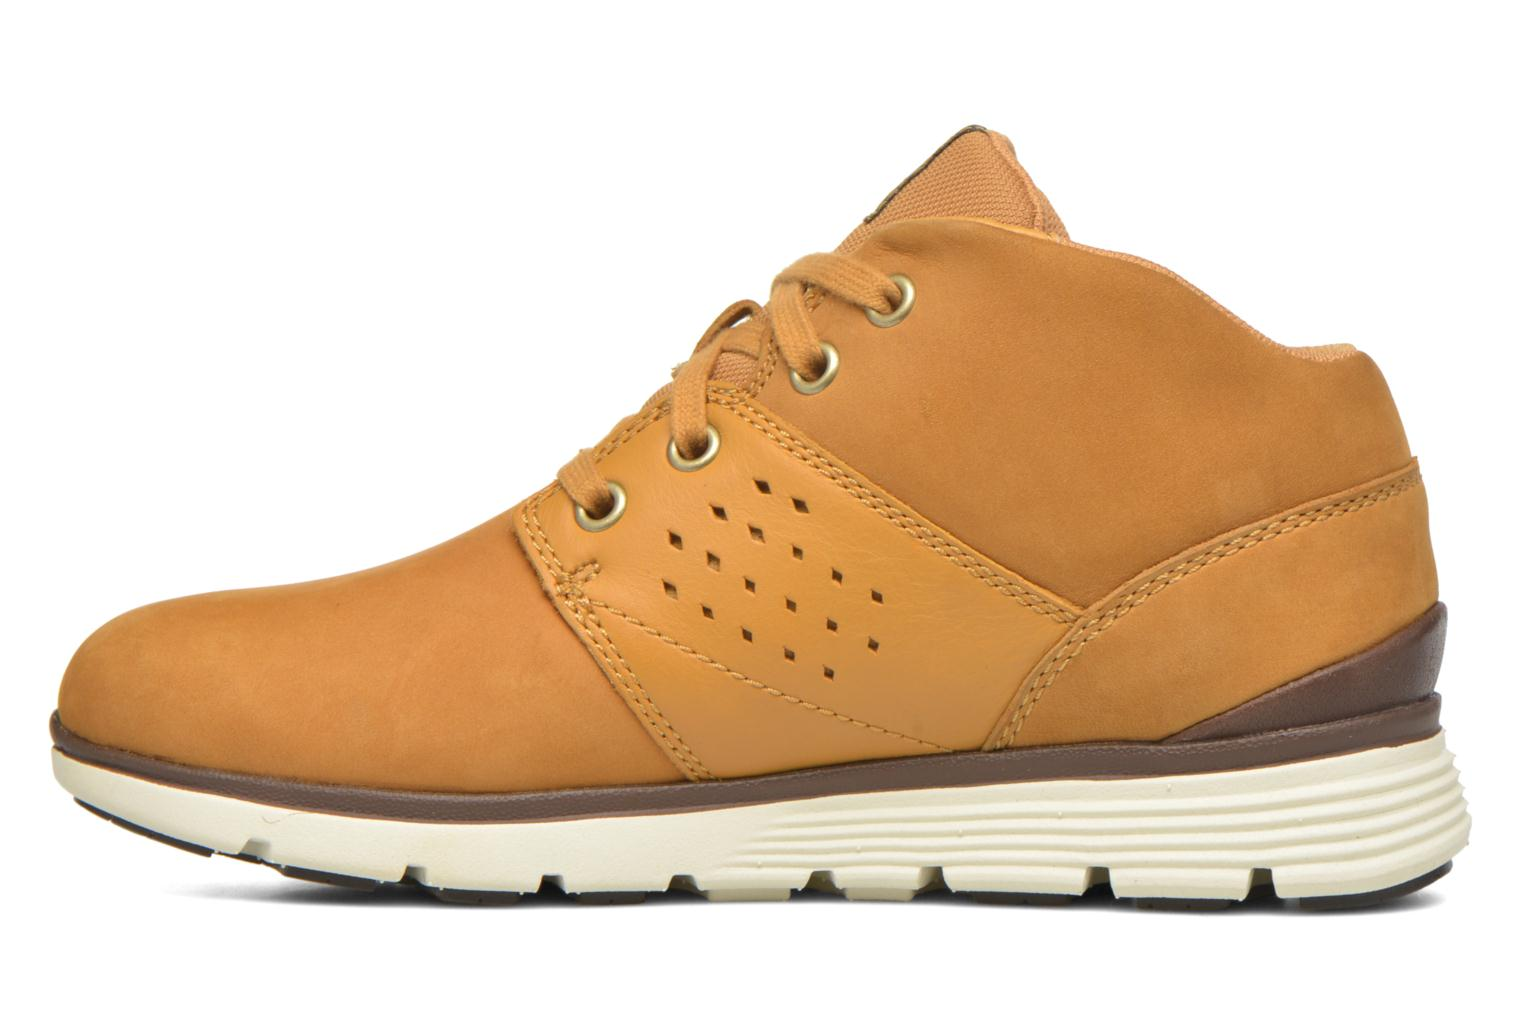 Killington Chukka Wheat